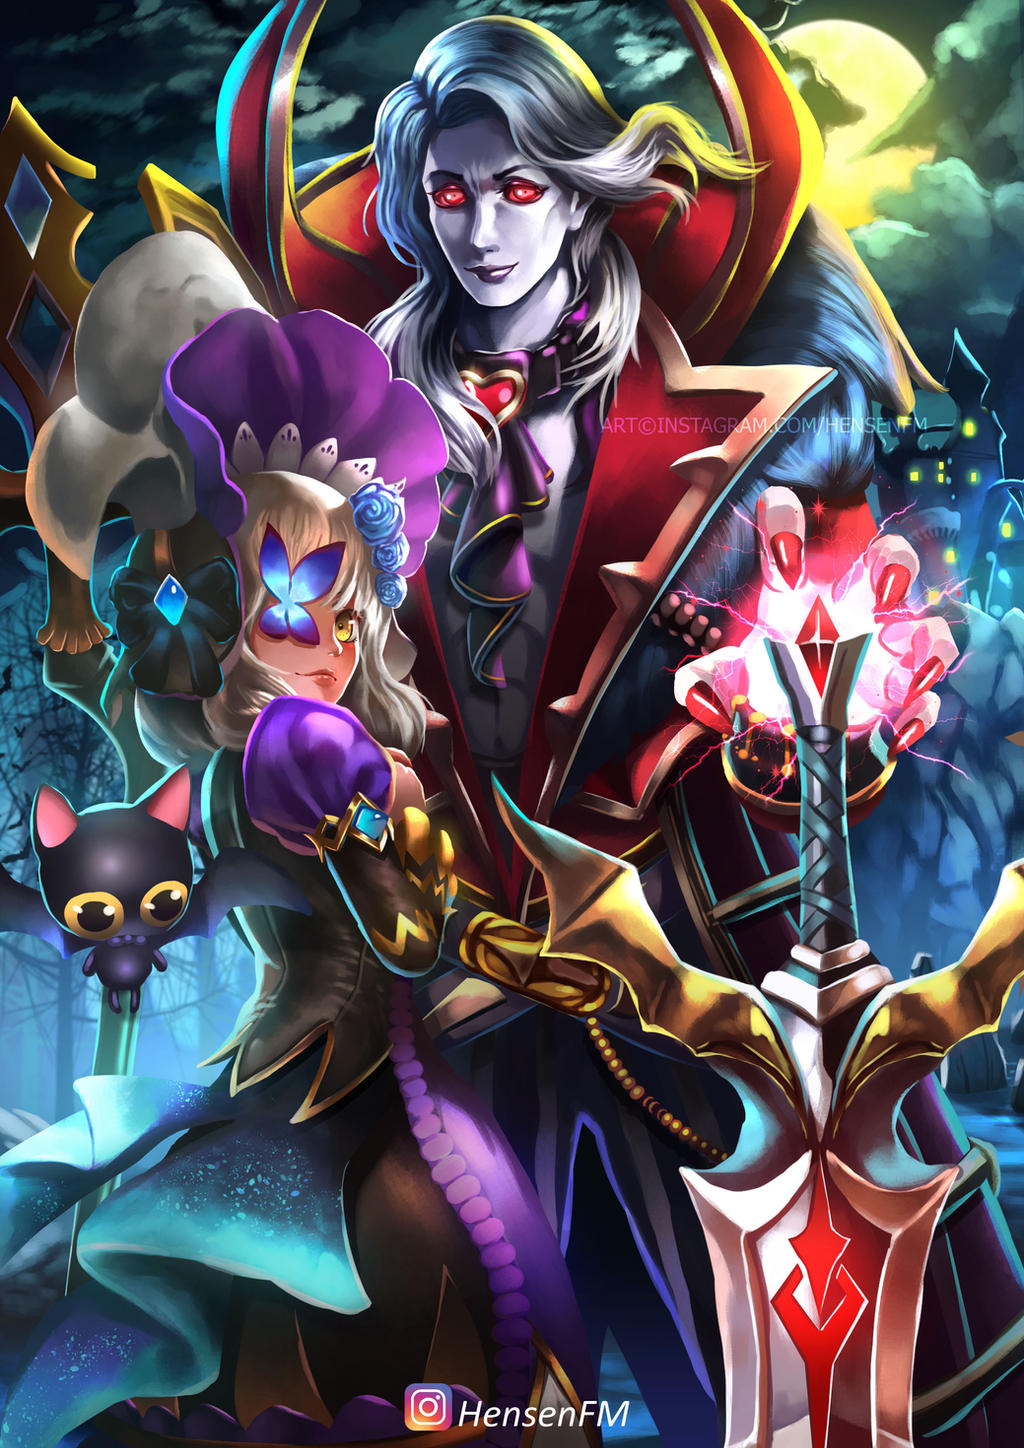 Wallpaper Mobile Legends Alucard Kolek Gambar